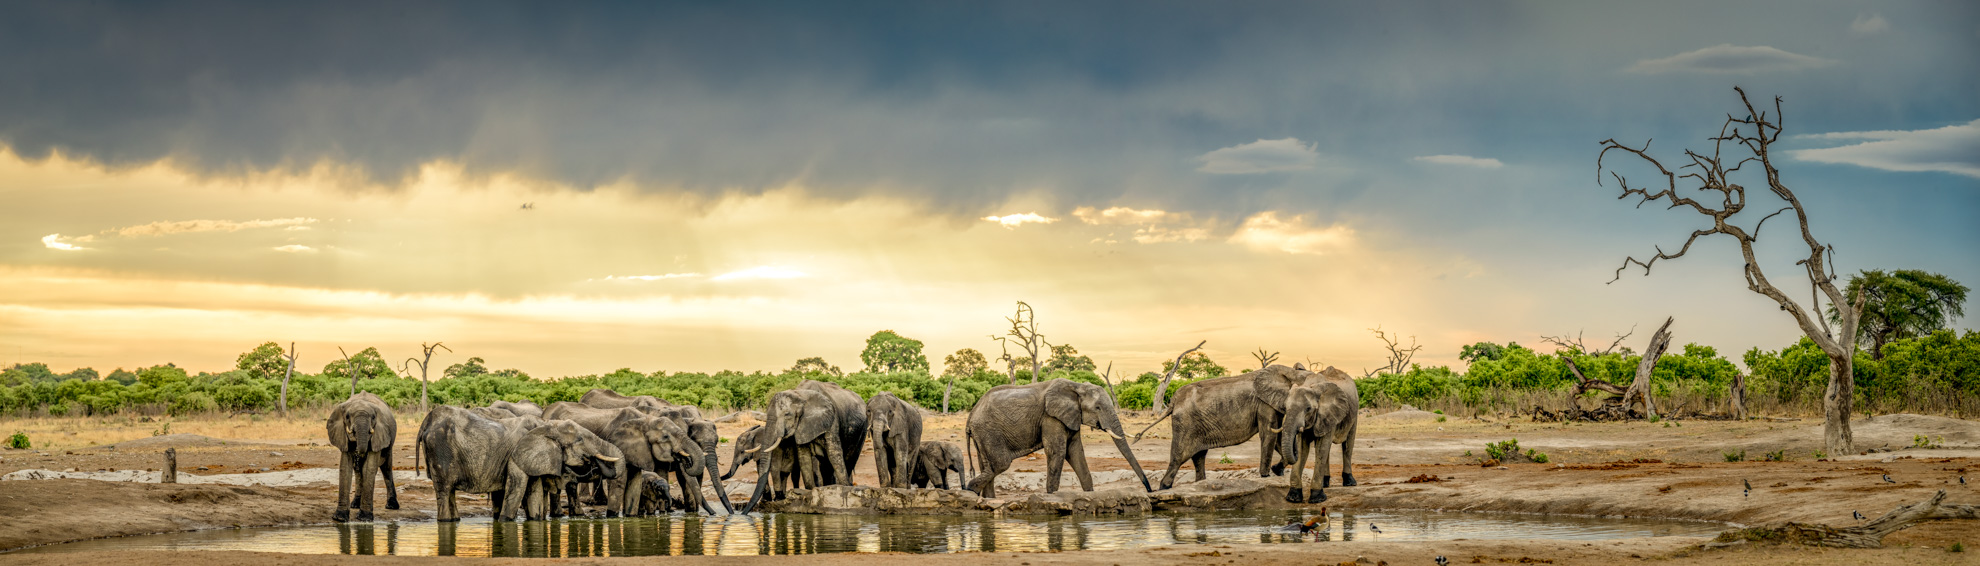 high res stitched panoramic wildlife image.